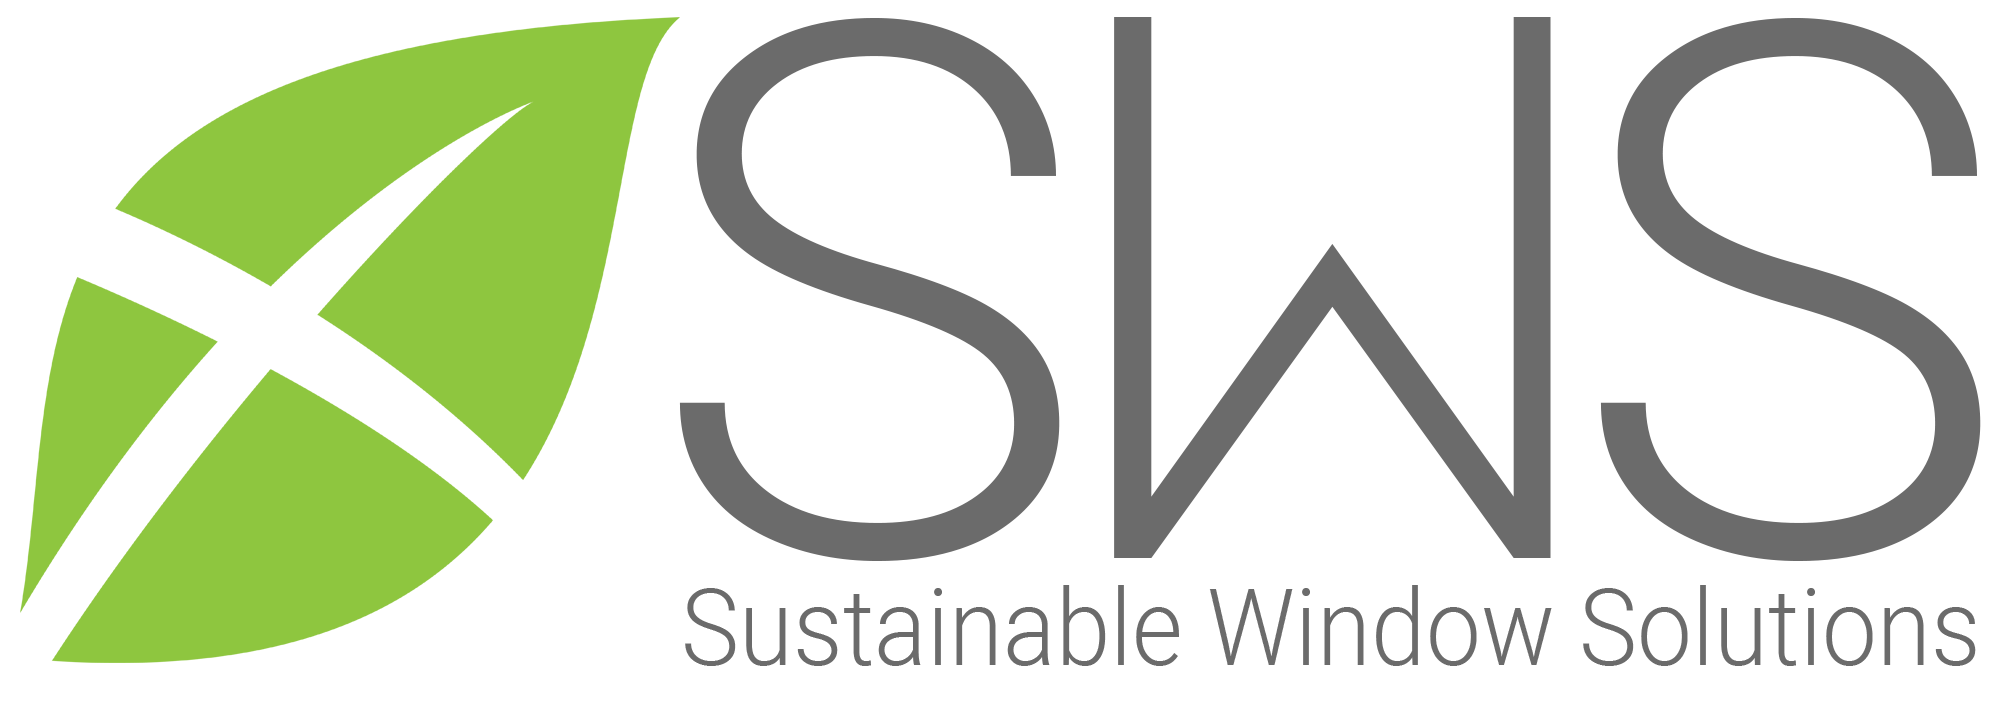 Sustainable Window Solutions Edinburgh